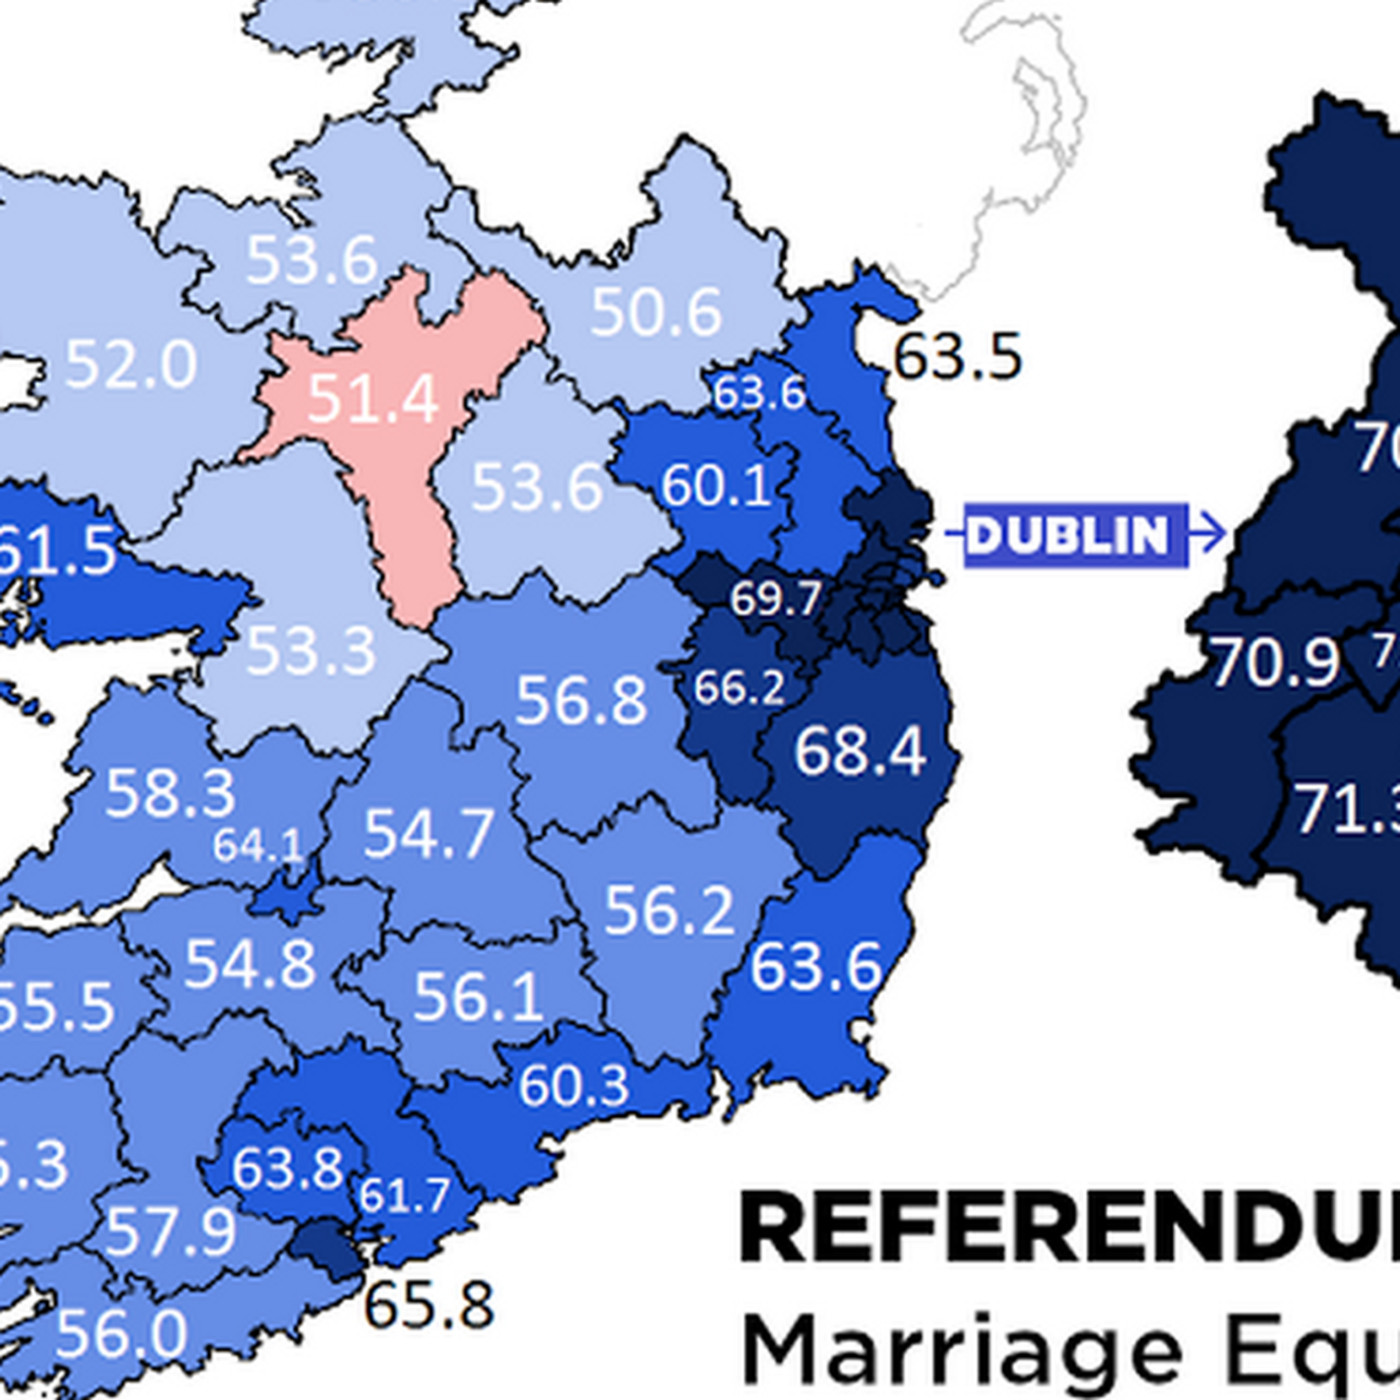 Map Of Dublin 3 Ireland.Support For Marriage Equality In Ireland Was Strikingly Broad Vox